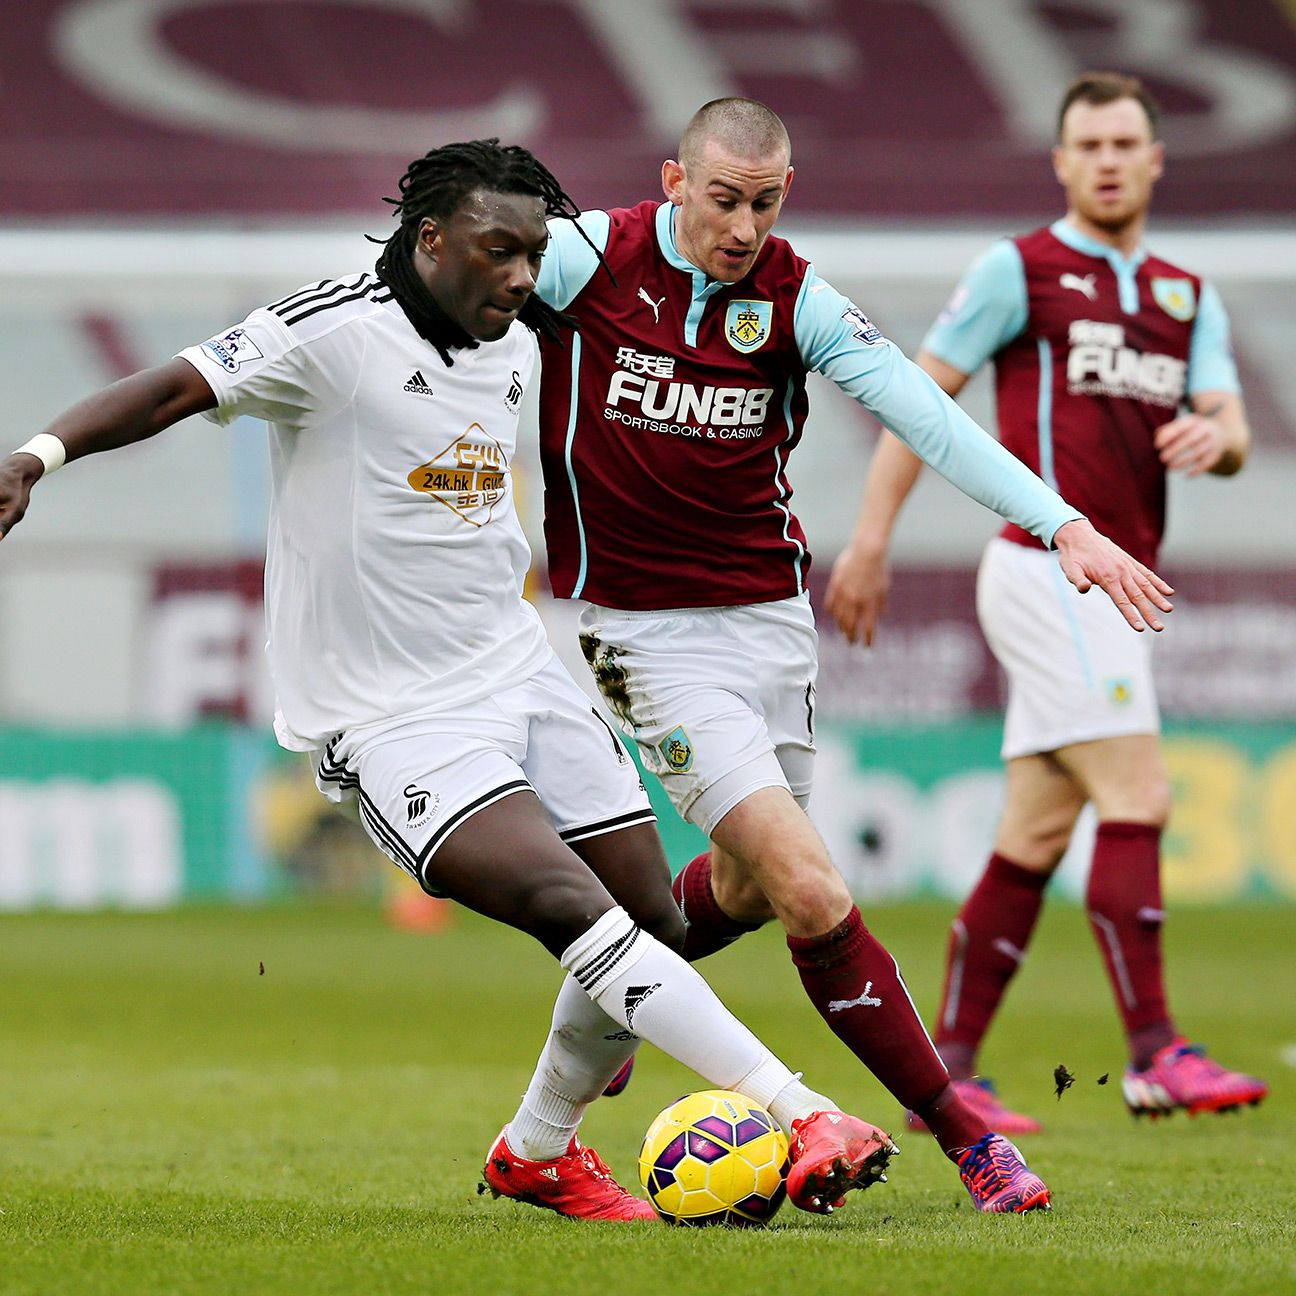 Swansea reaped the rewards of Bafetimbi Gomis' efforts up front versus Burnley on Saturday.